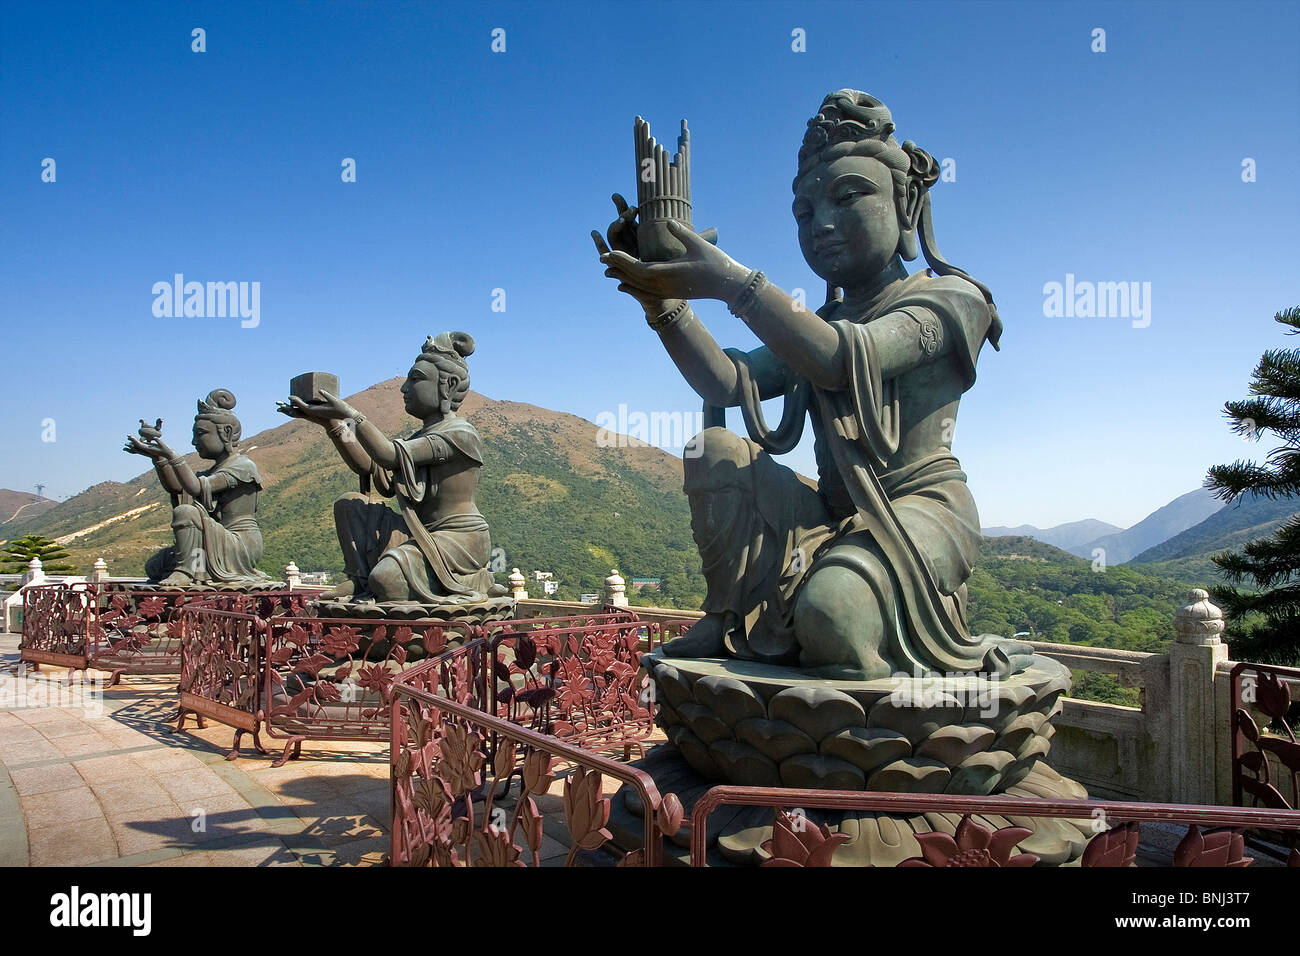 Hong Kong Hongkong Asia Lantau Iceland sculptures figures religion culture Stock Photo